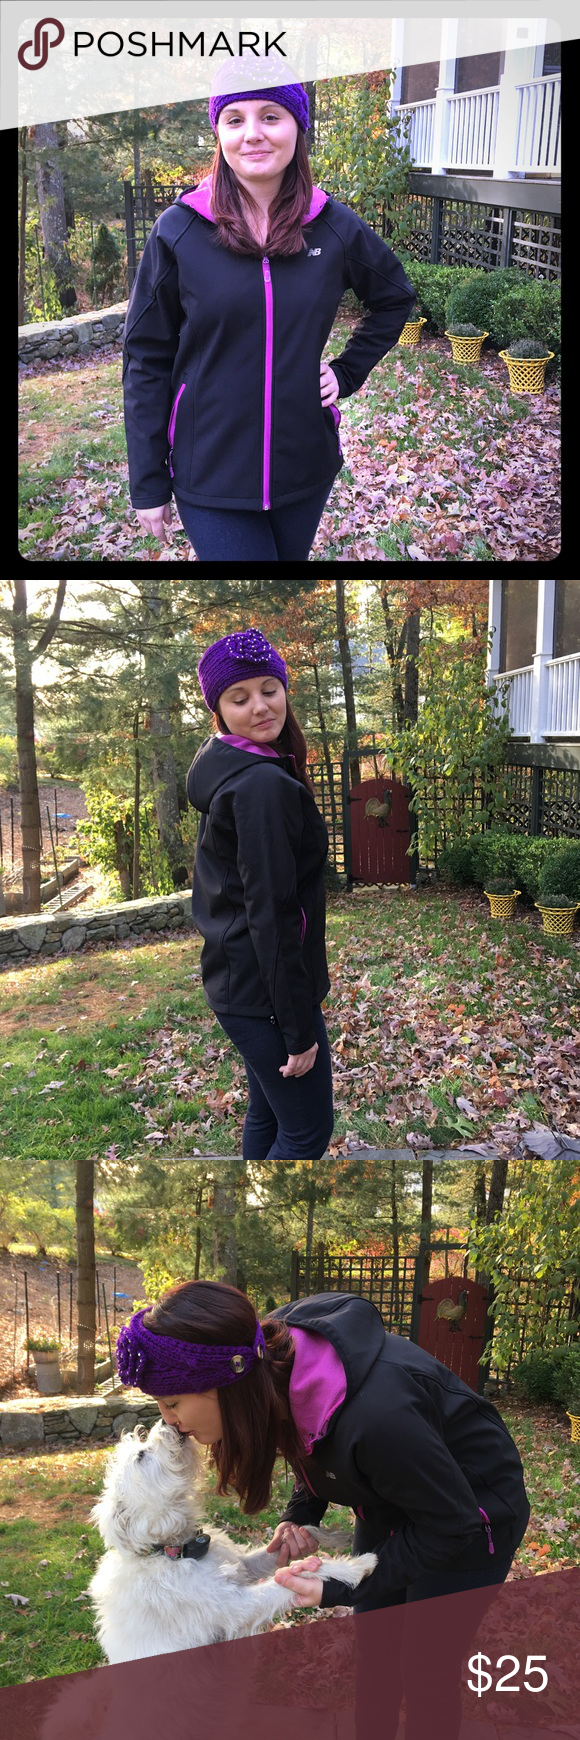 NEW BALANCE JACKET Follow my INSTAGRAM for video of jacket. @gibaravintage. Black and fuchsia. Lightweight jacket for a chilly fall day. Great for layering. Size medium. New Balance Jackets & Coats